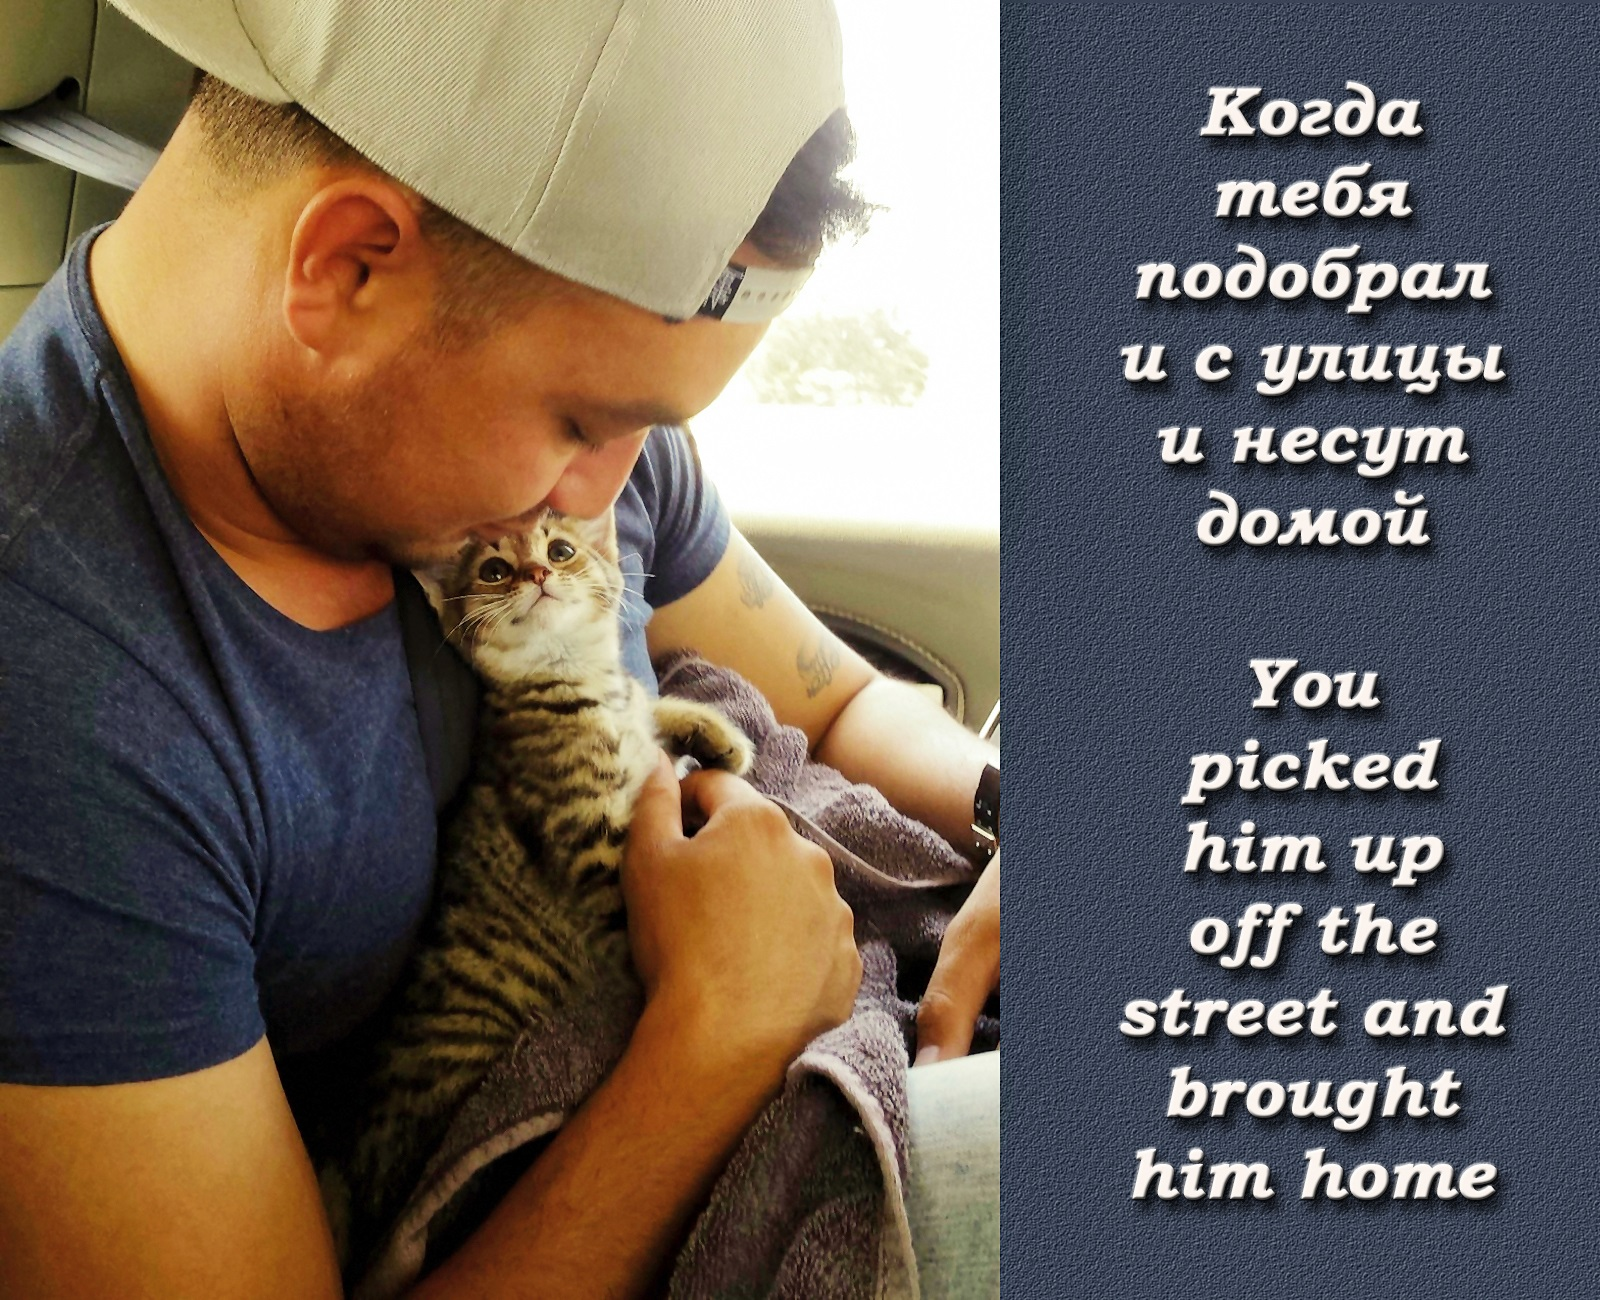 00-man-and-cat-070217